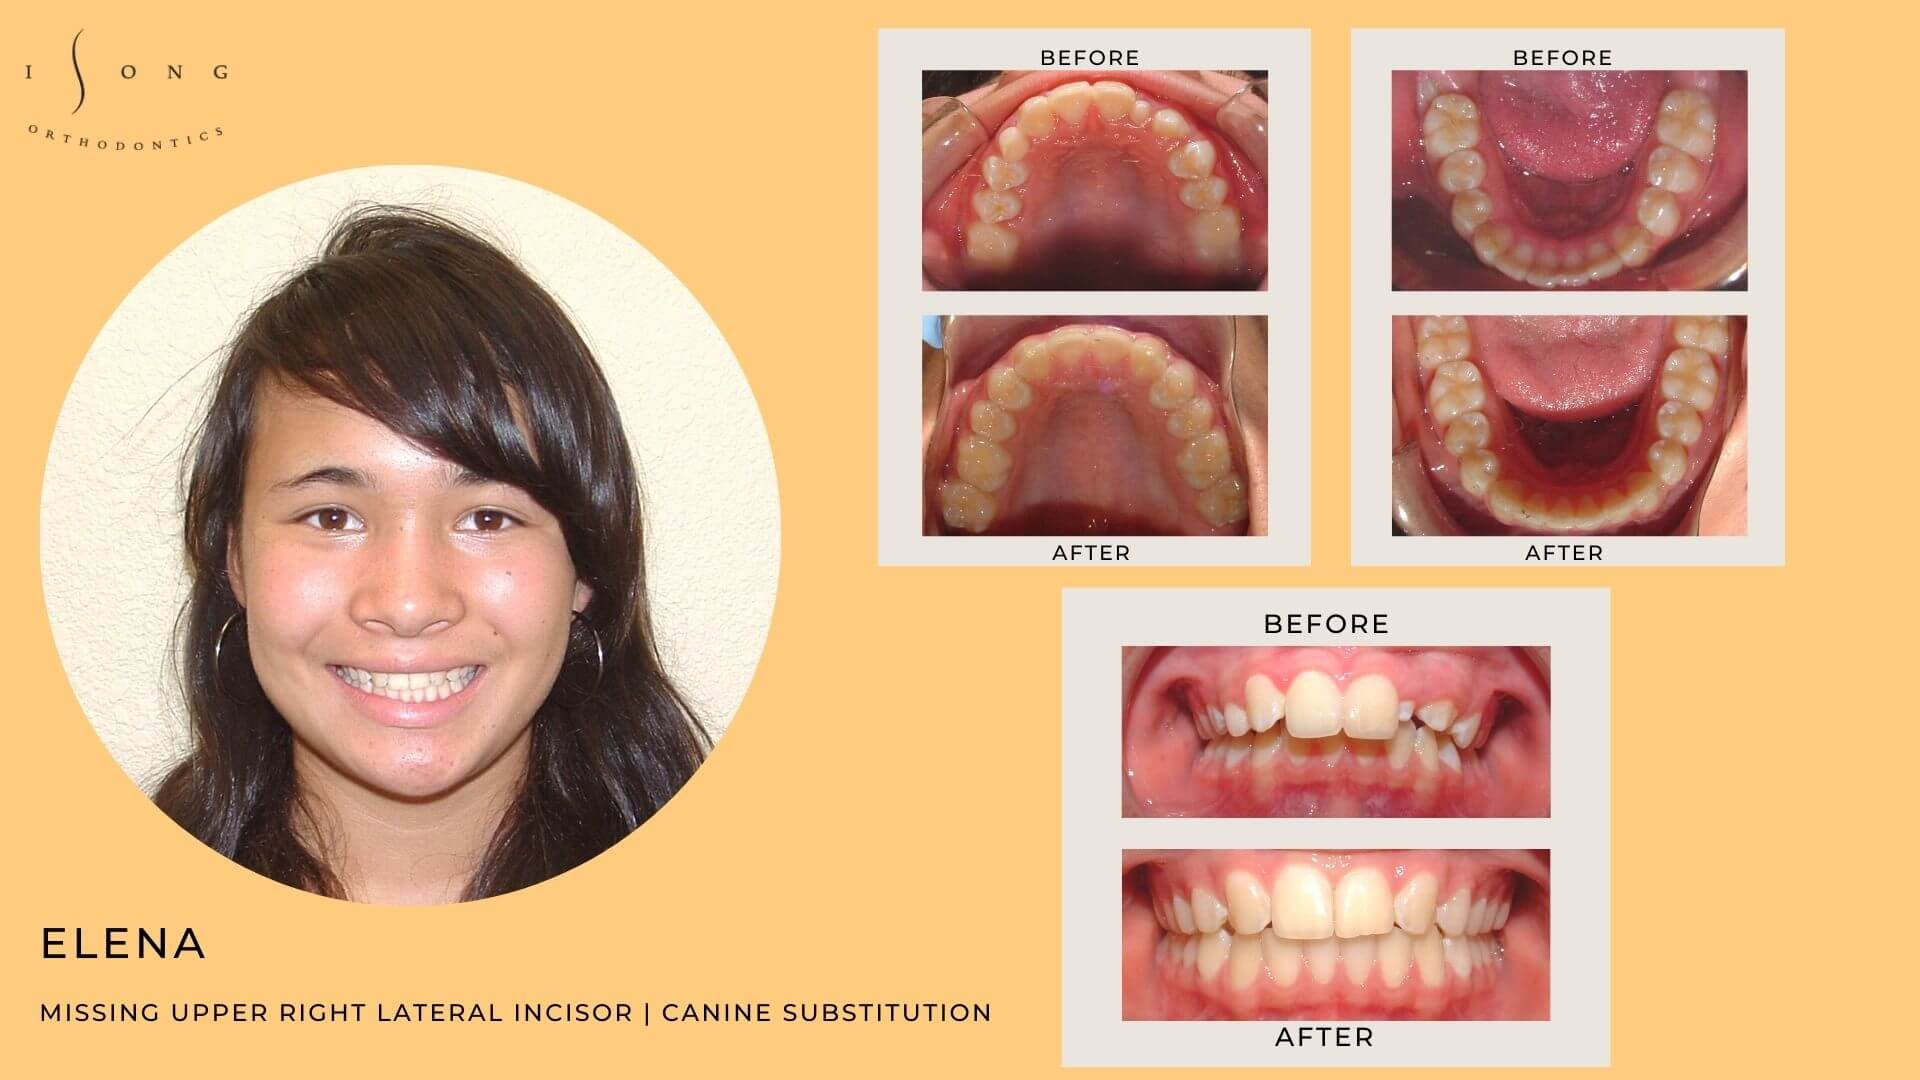 Elena Braces Before and After